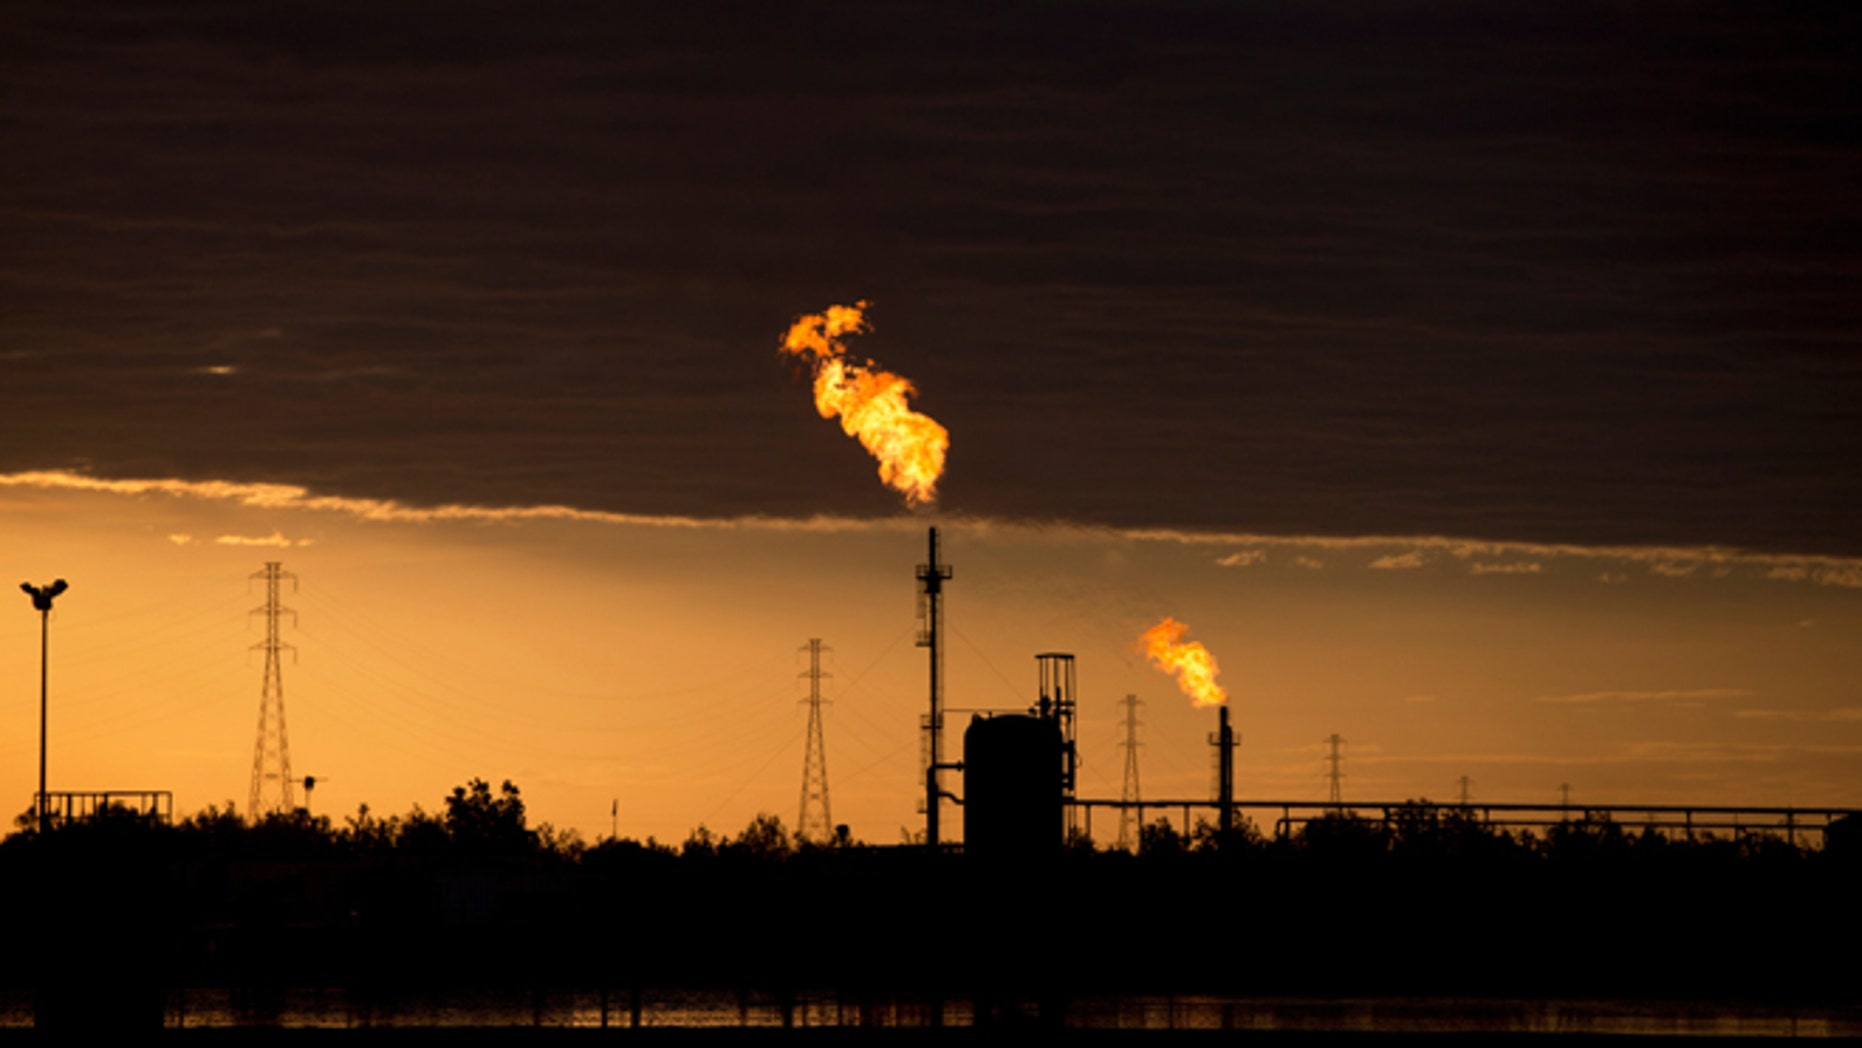 In this Feb. 18, 2015 photo, flames burn at an oil complex near El Tigre, a town located within Venezuela's Hugo Chavez oil belt, formally known as the Orinoco Belt. The Costa Rica-sized area is home to the worlds largest oil reserves and about half of Venezuelas current production. (AP Photo/Fernando Llano)